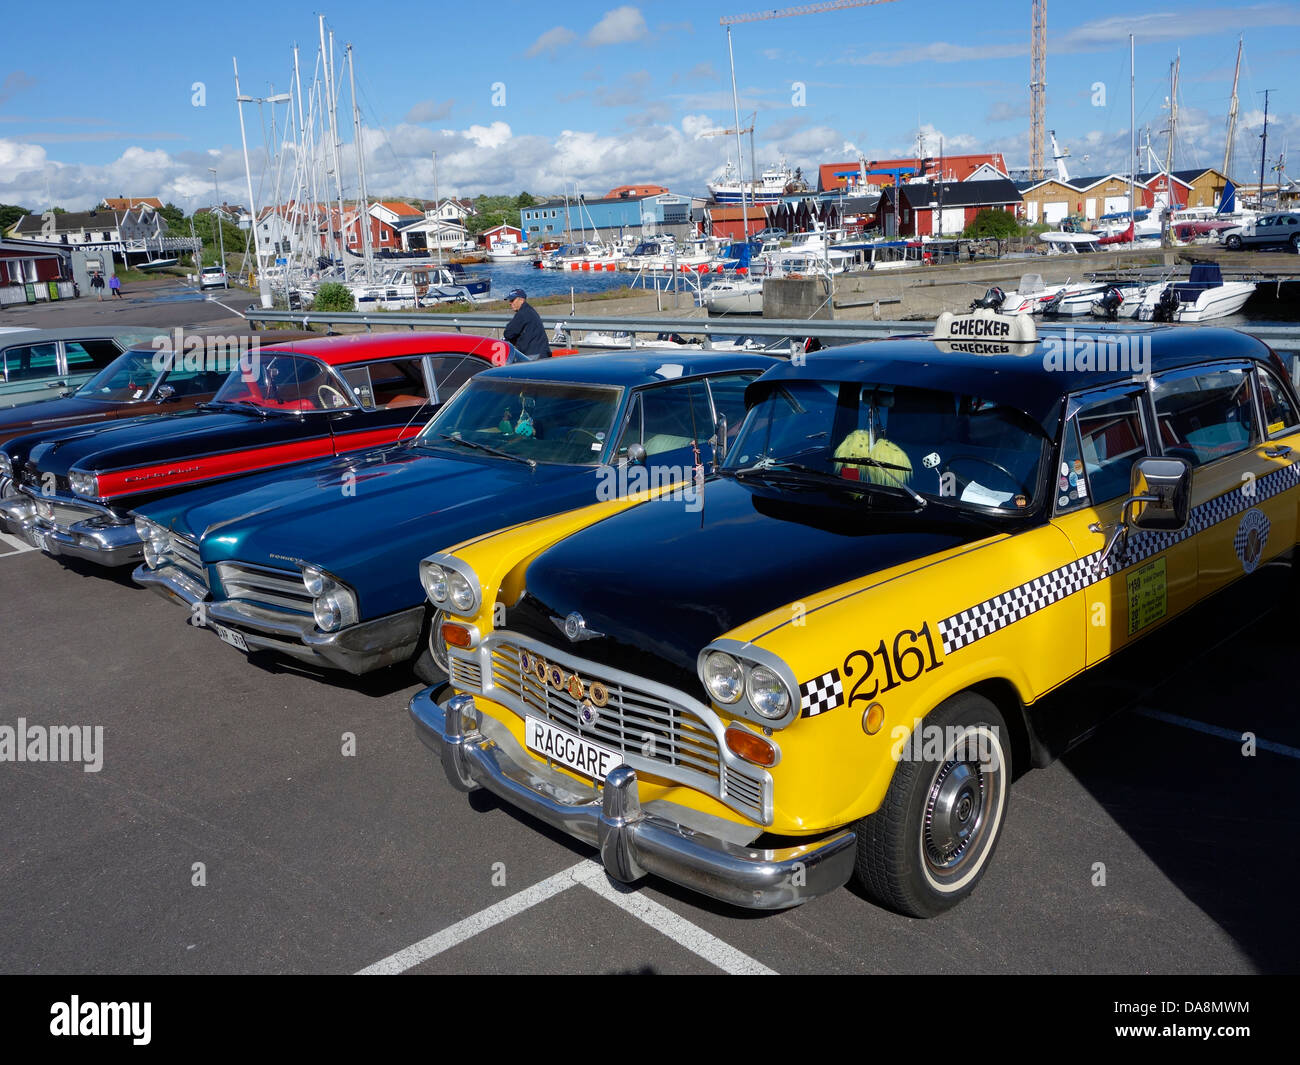 A retro Checker Taxicab and classic cars line up on a parking lot in a marina in Sweden. - Stock Image